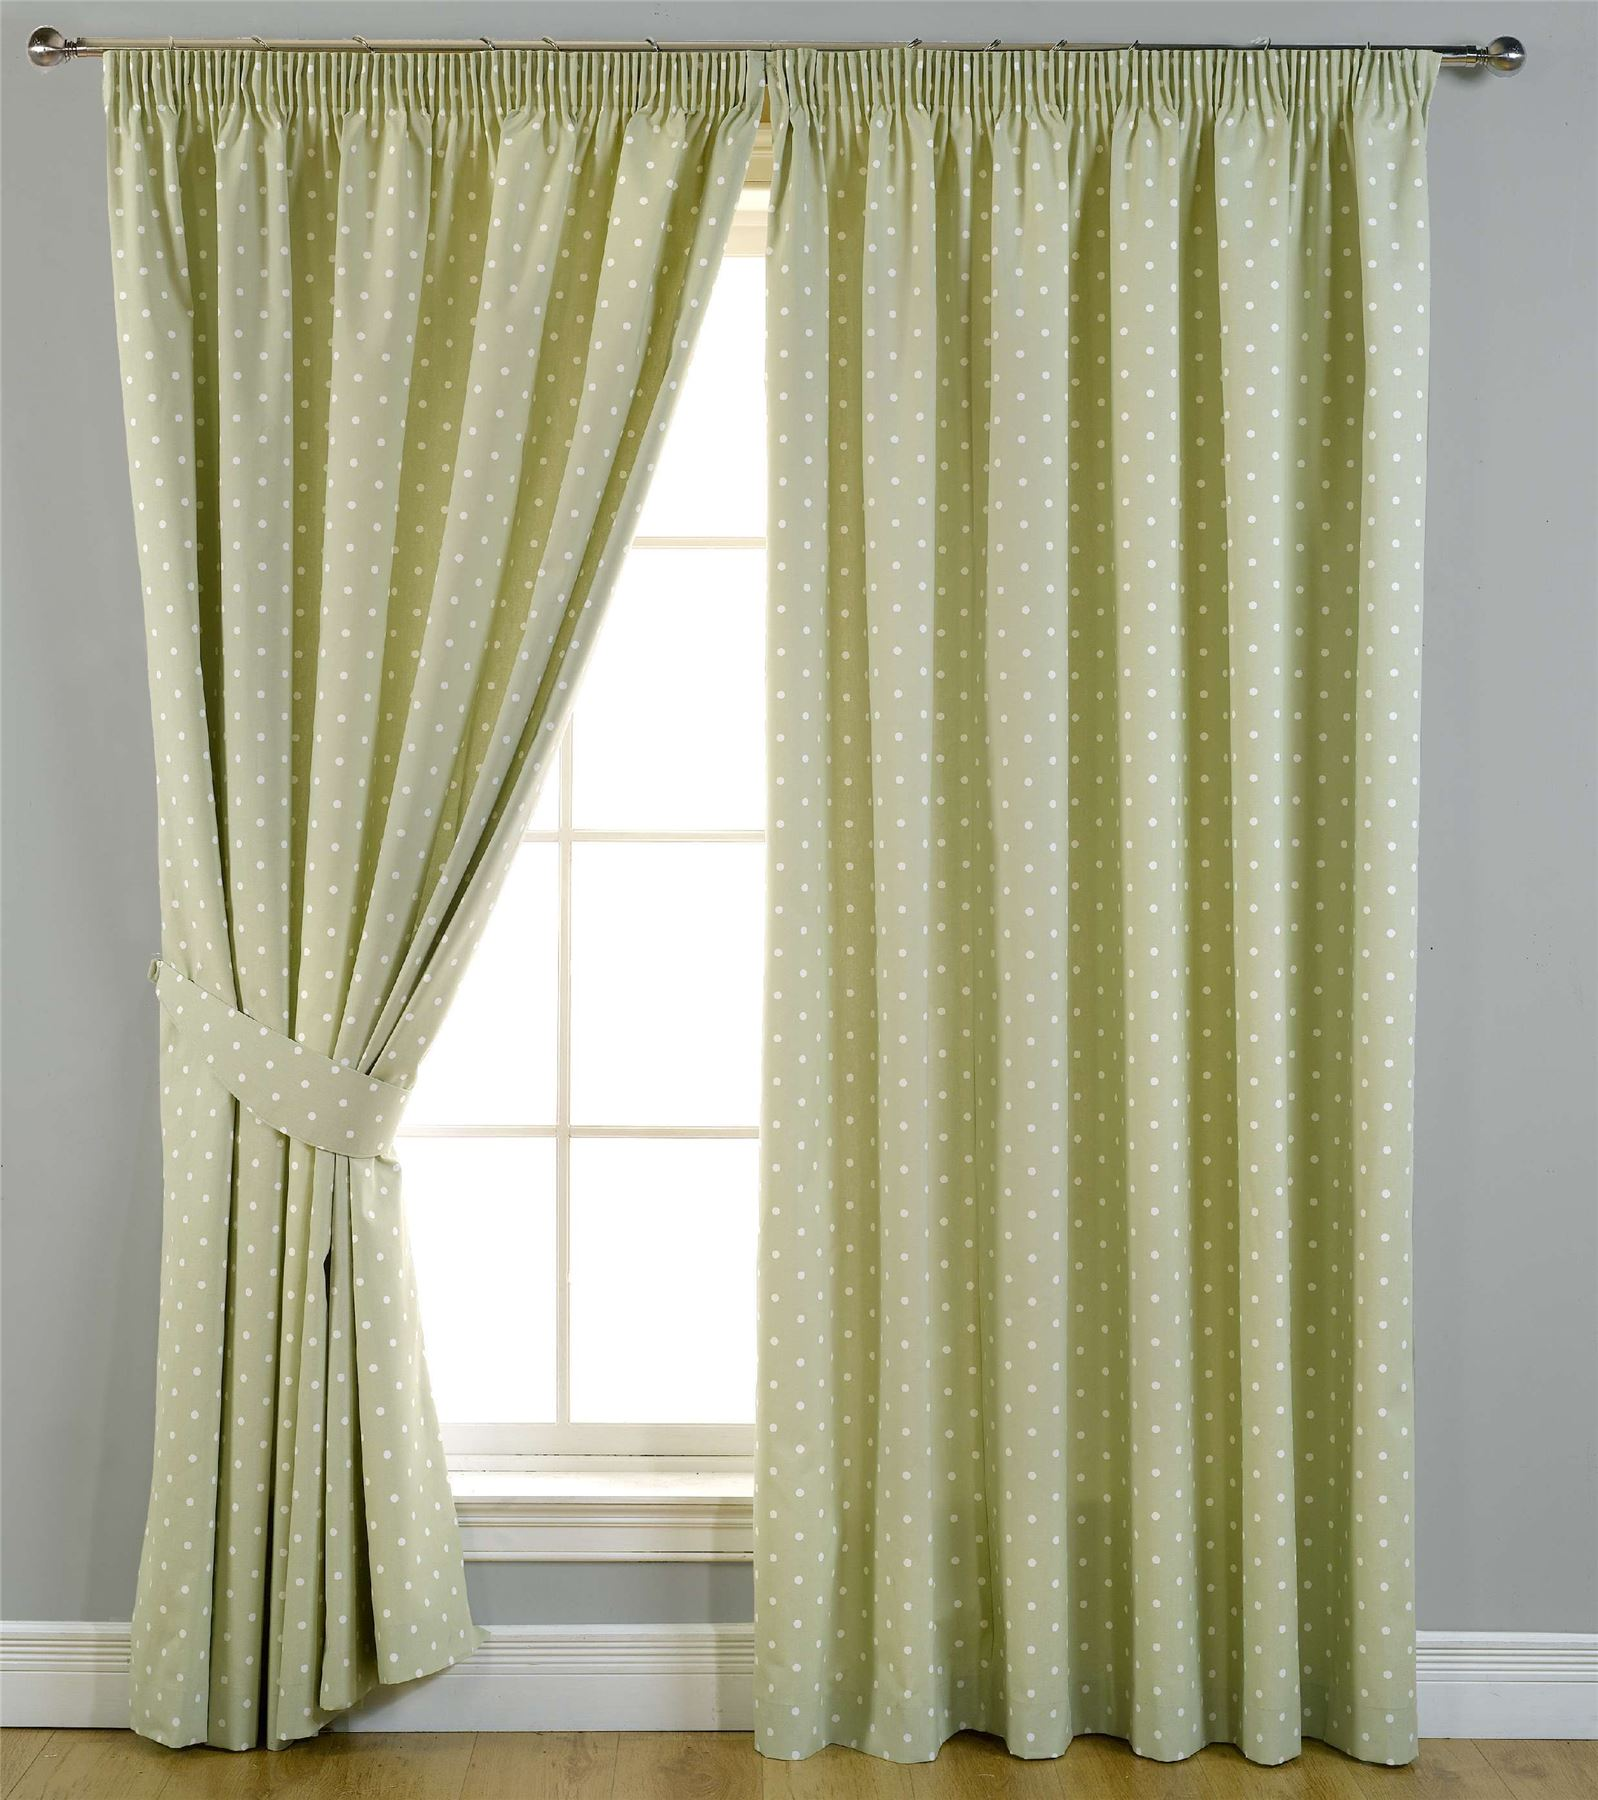 navy yellow of design drapes lovely dining luxury go green curtains interior walls tsumi color room and with what x